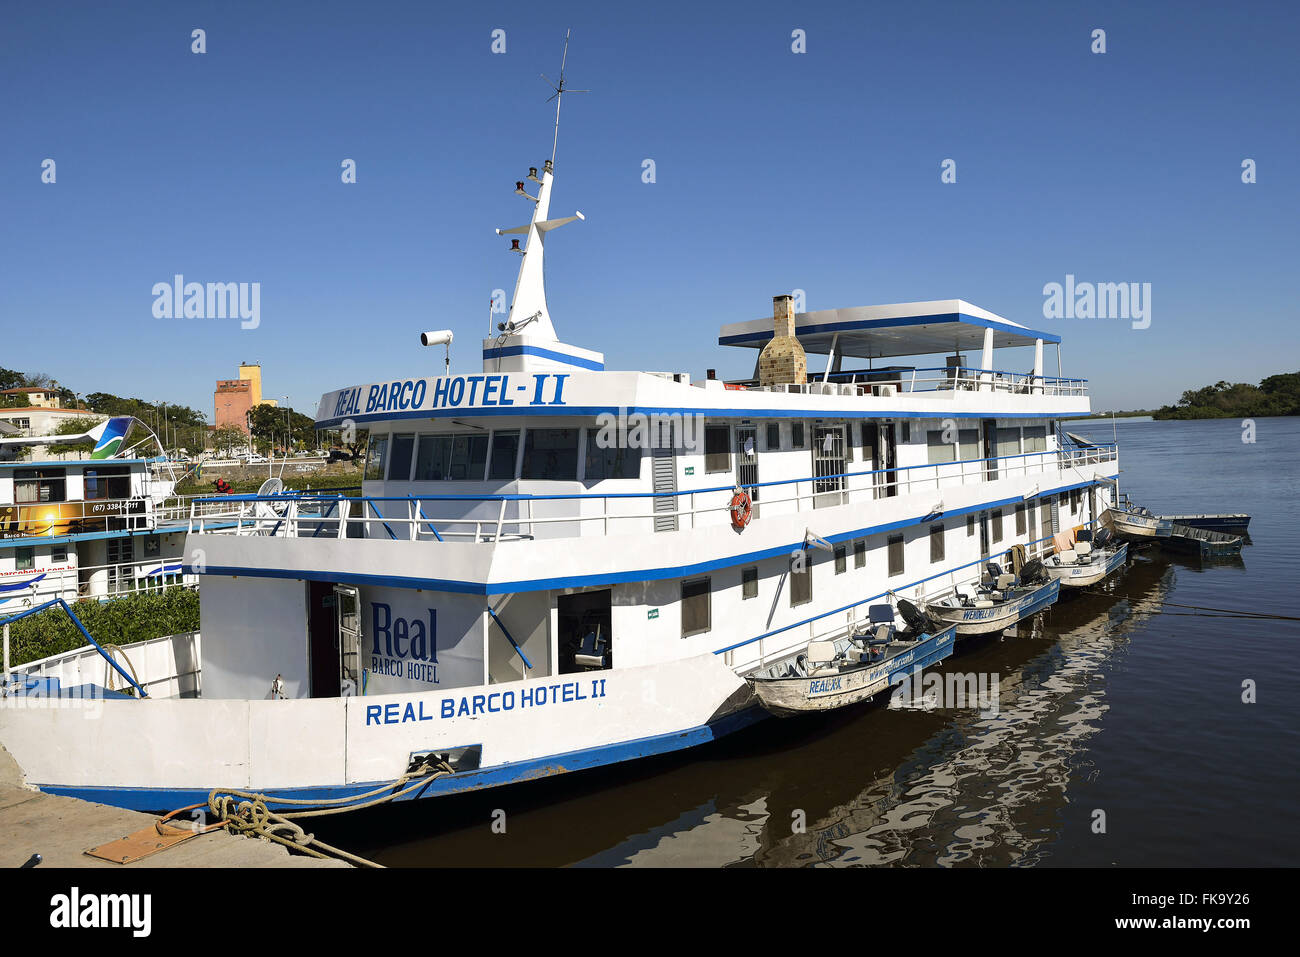 Central motor boat that works as a means of transport and tourism for fishermen - Stock Image